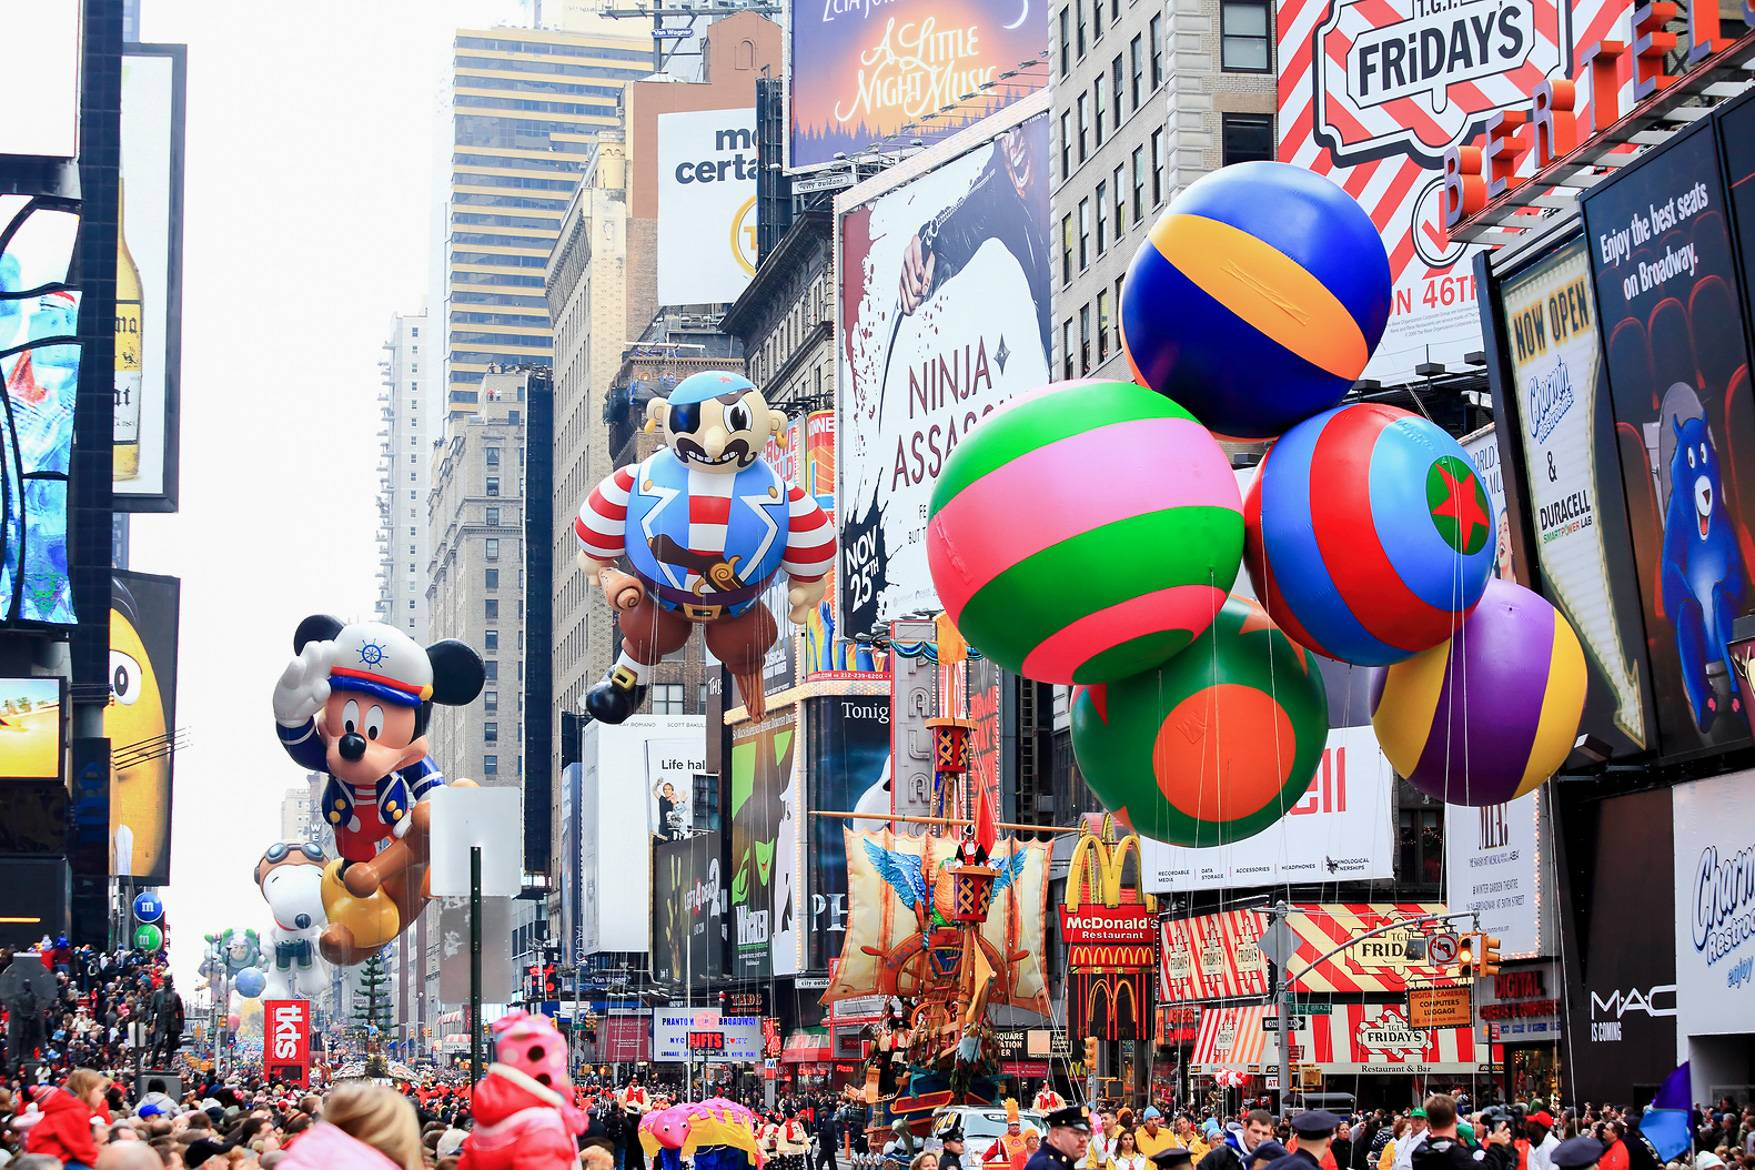 Image of Balloons During the Macy's Thanksgiving Day Parade